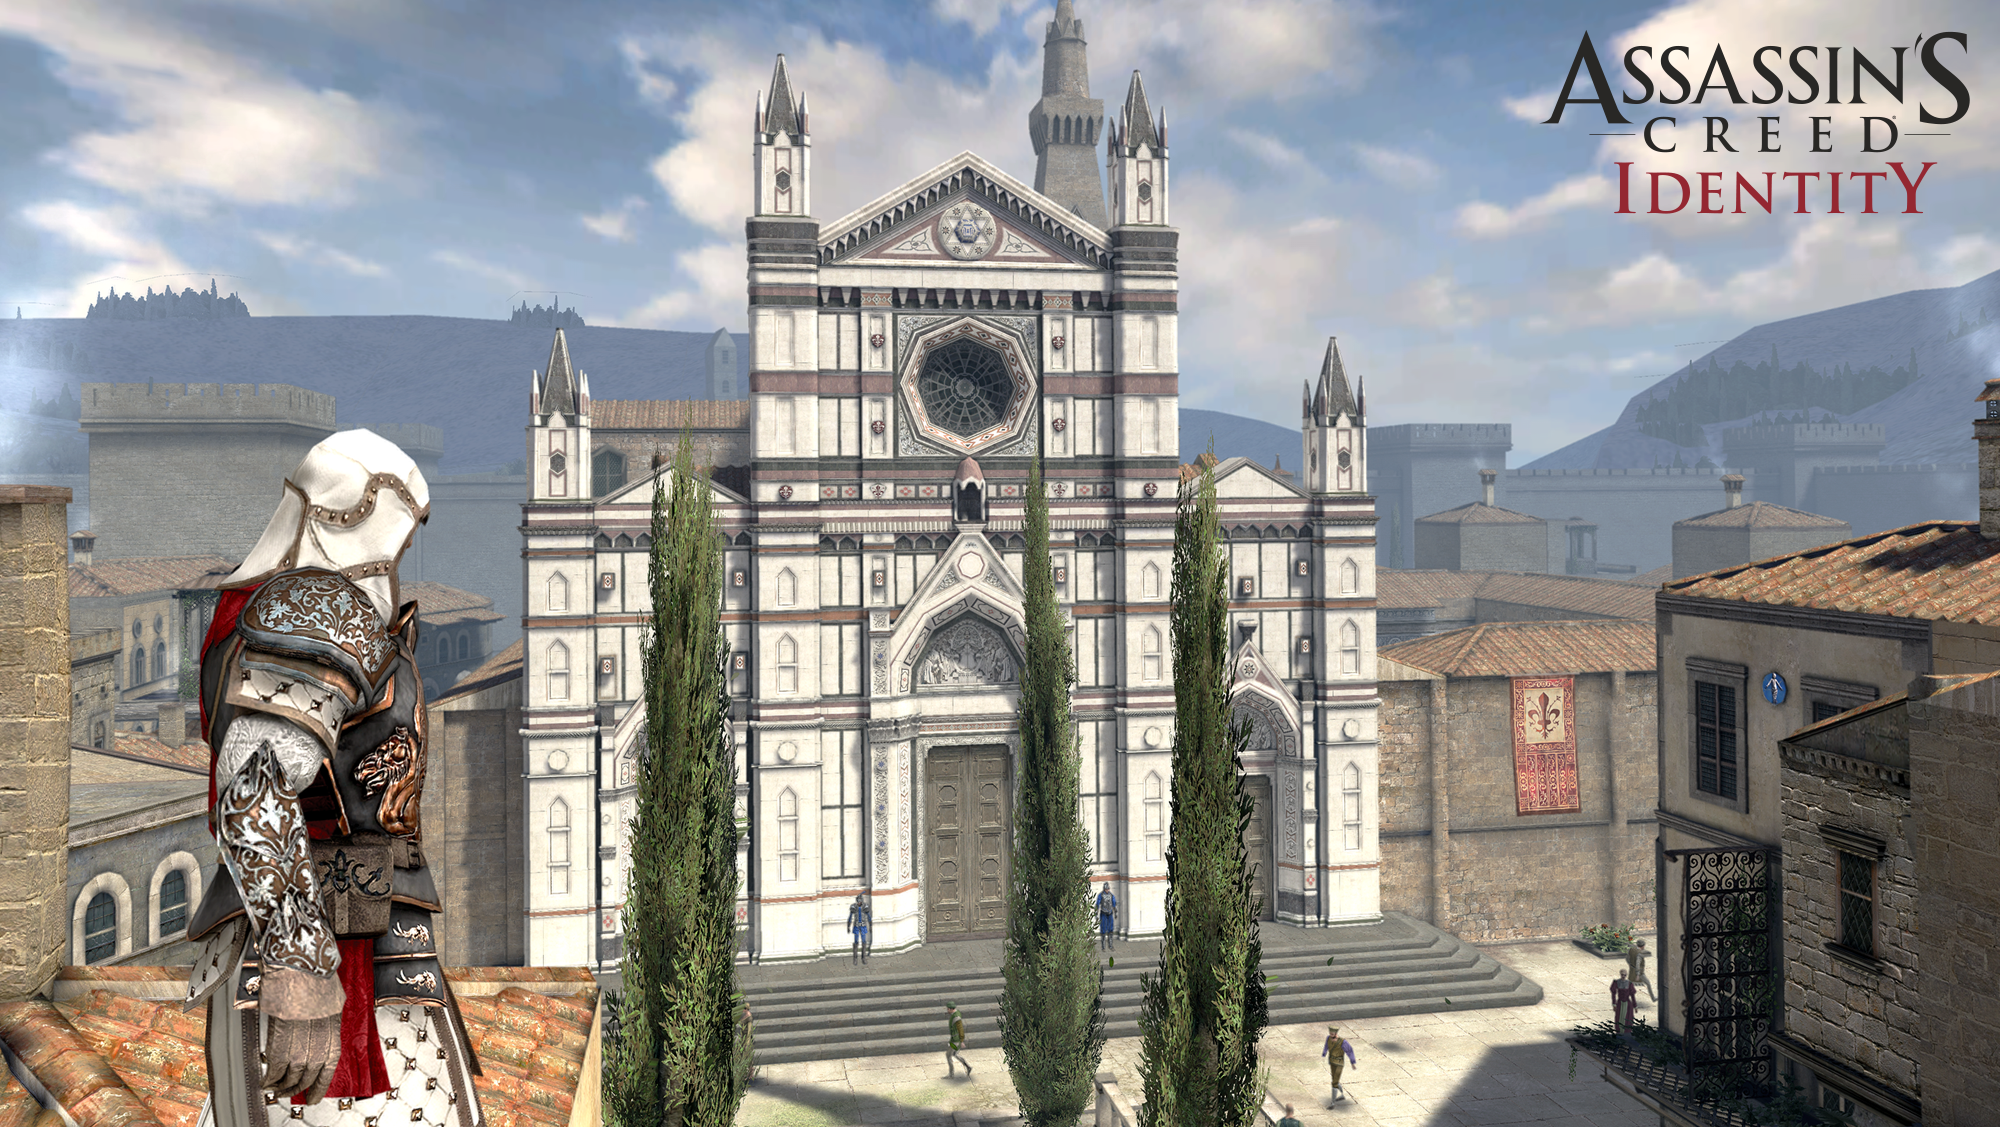 assassins creed identity (6)